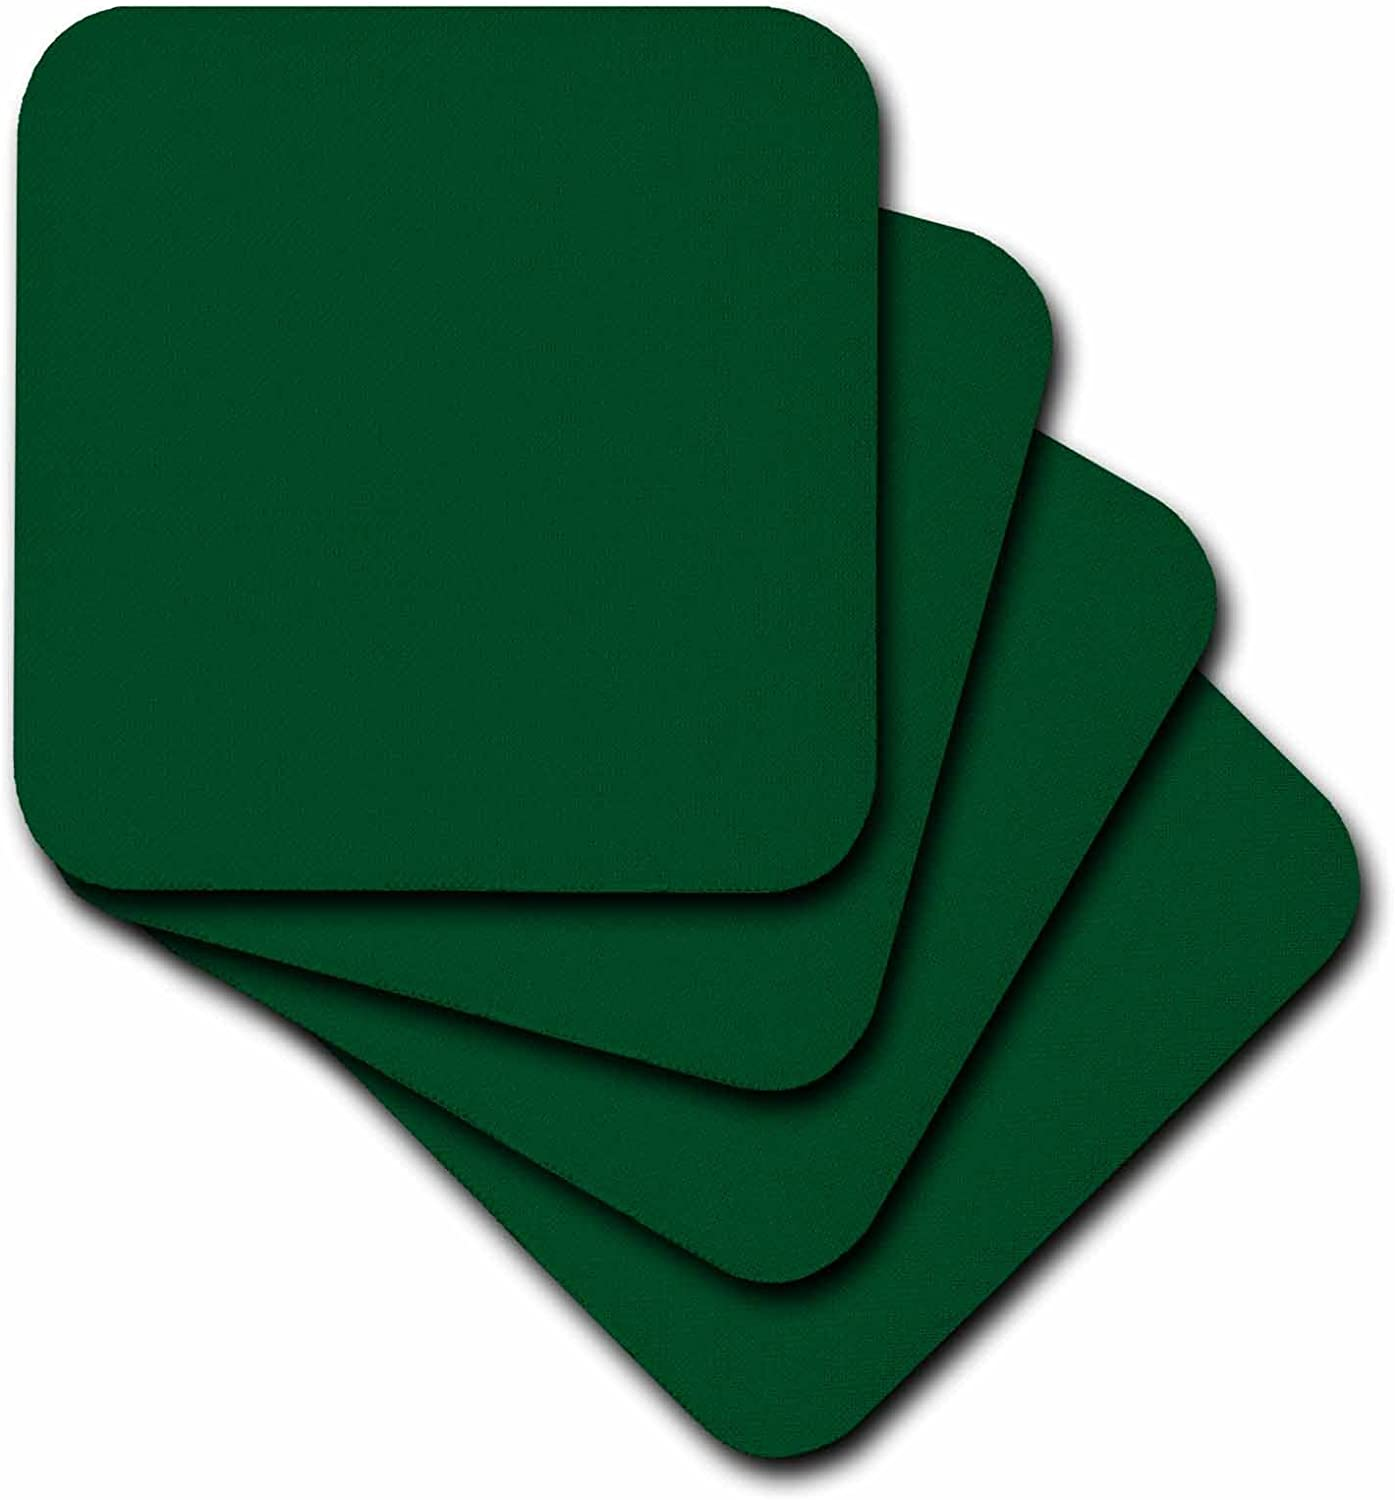 3drose Cst 30643 4 Forest Green Ceramic Tile Coasters Set Of 8 Amazon Co Uk Kitchen Home